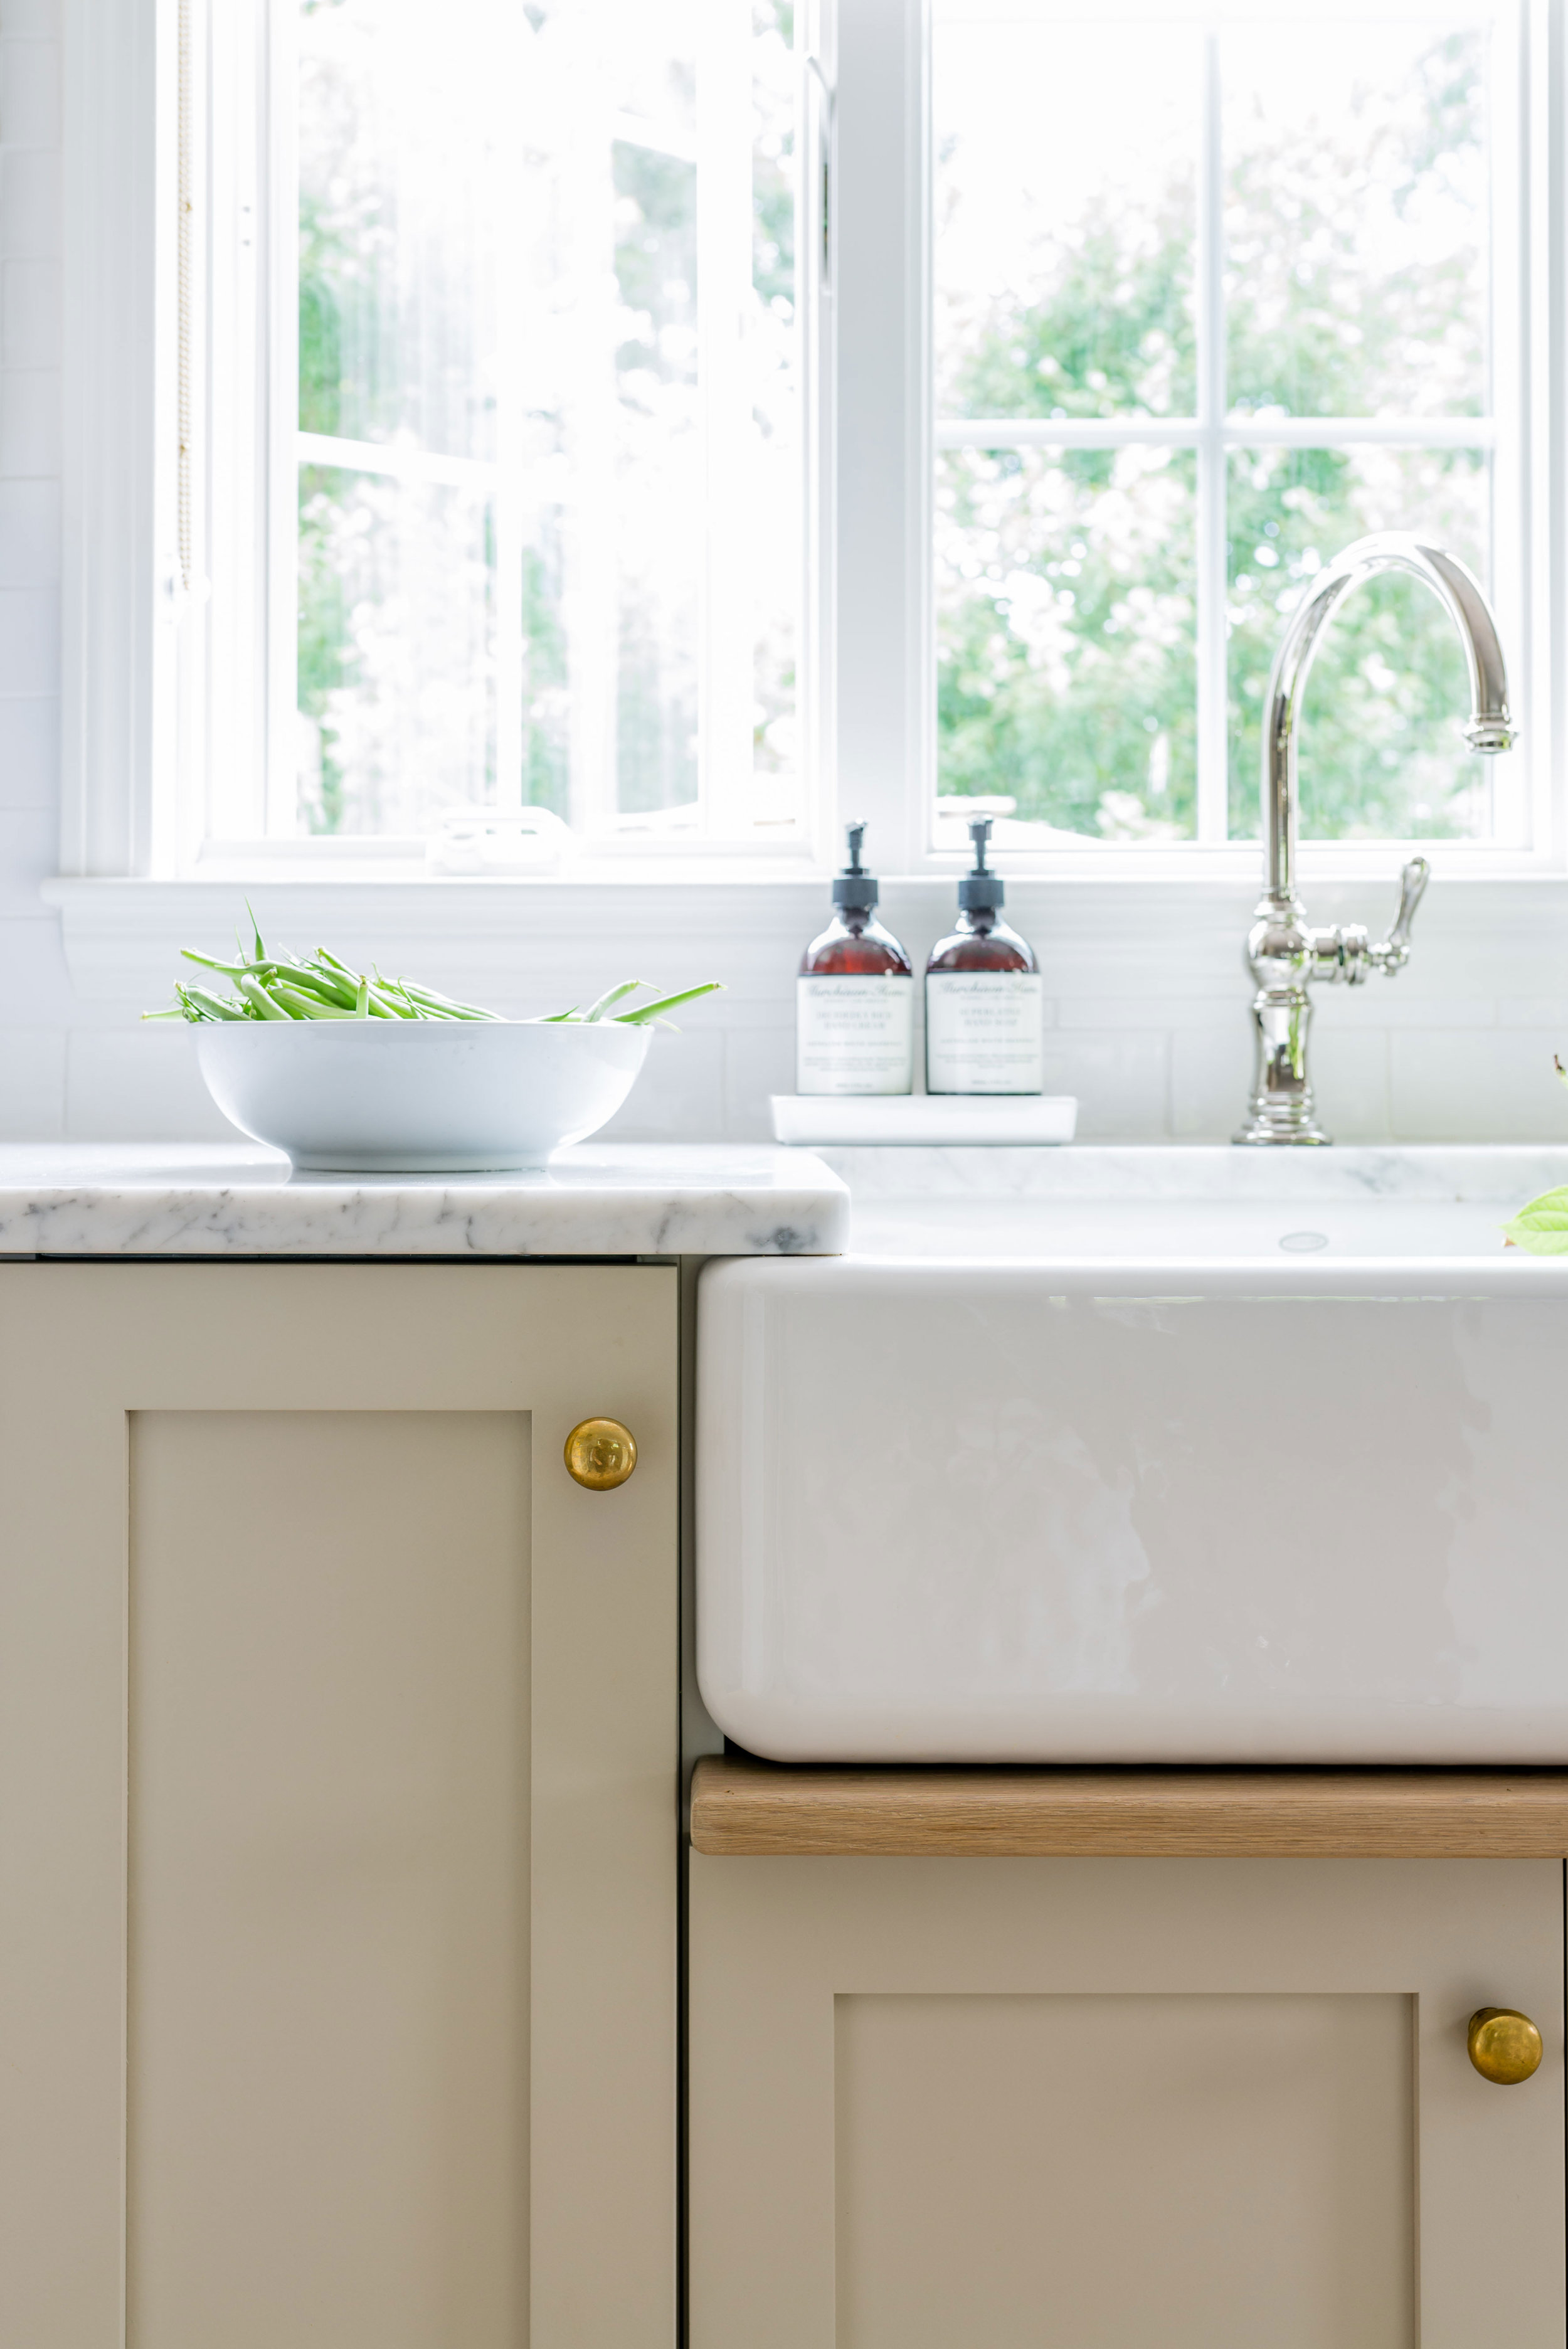 """Cabinets are customized IKEA boxes, painted with  Farrow & Ball Drop Cloth 283 . Cabinet hardware is unlaquered brass pulls and knobs from  House of Antique Hardware . Countertops are honed Carrera marble from  Gerrity Stone . The sink is Whitehaven 30"""" from Kohler. Faucet is  Kohler Artifacts . Design:  Christina Wikman Interiors  // Photo:  Jessica Delaney"""